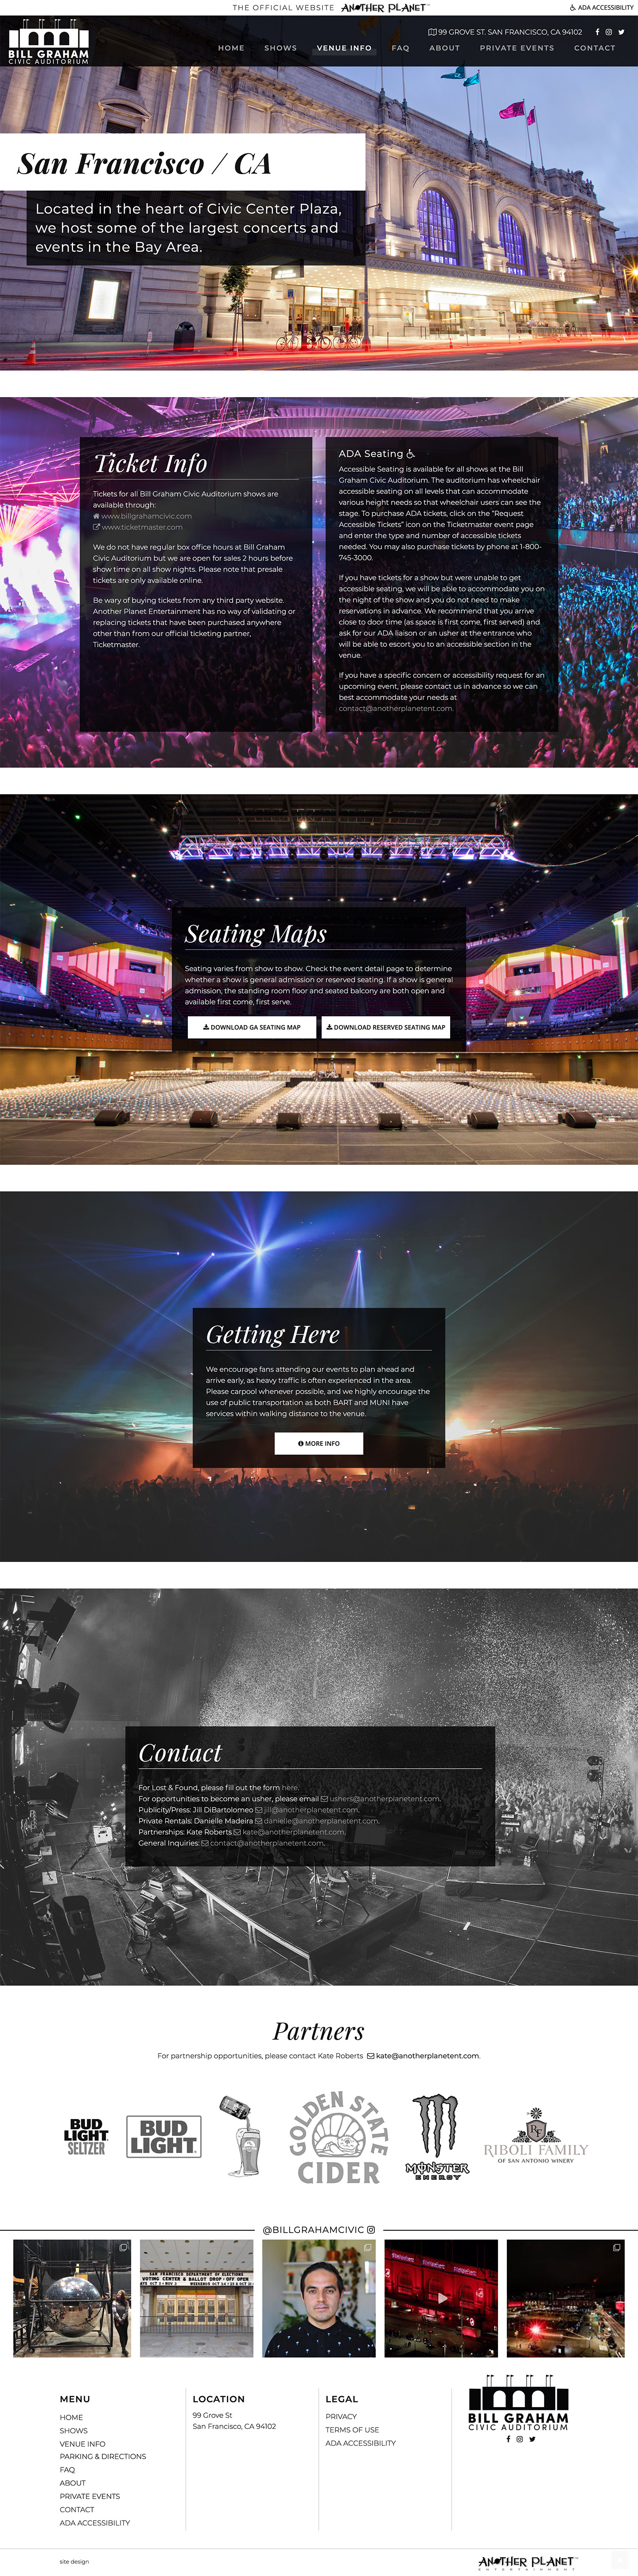 Schuler - Web Design - Bill Graham Civic Auditorium - Venue Info